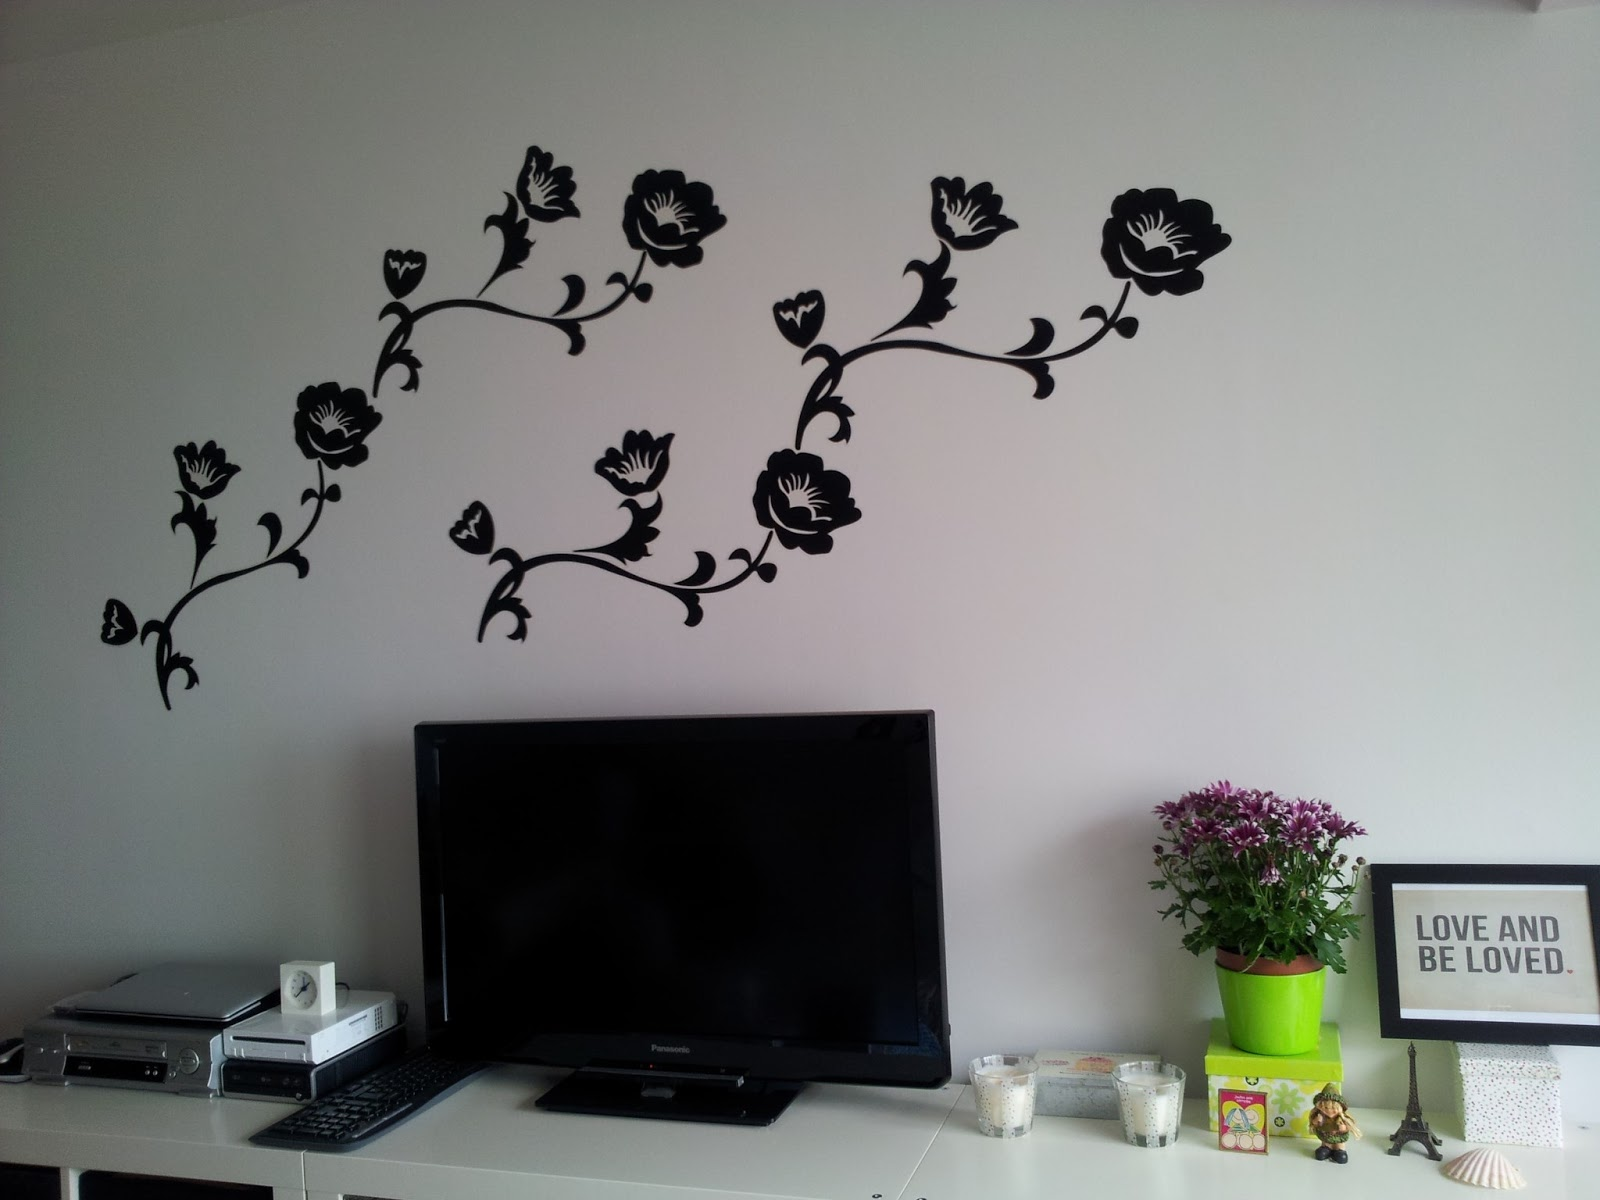 All in one decoraci n con vinilos for Pegatinas de pared ikea